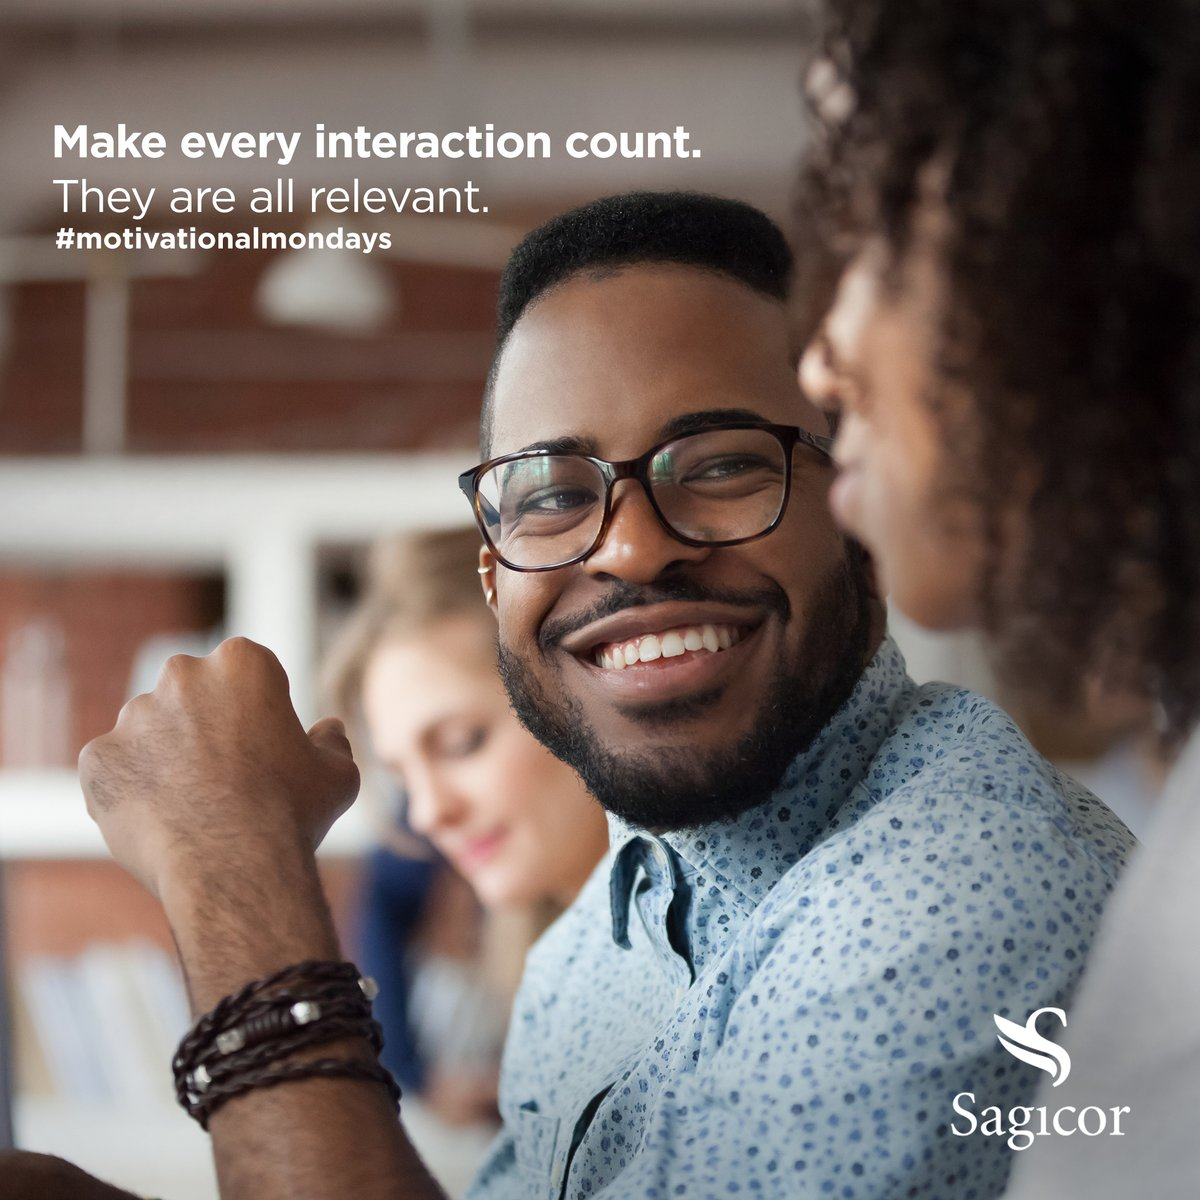 There's always a teachable moment in every situation. There's also a time to teach. Value every moment.   #MotivationalMondays #Sagicor #WiseFinancialThinking #Teamwork